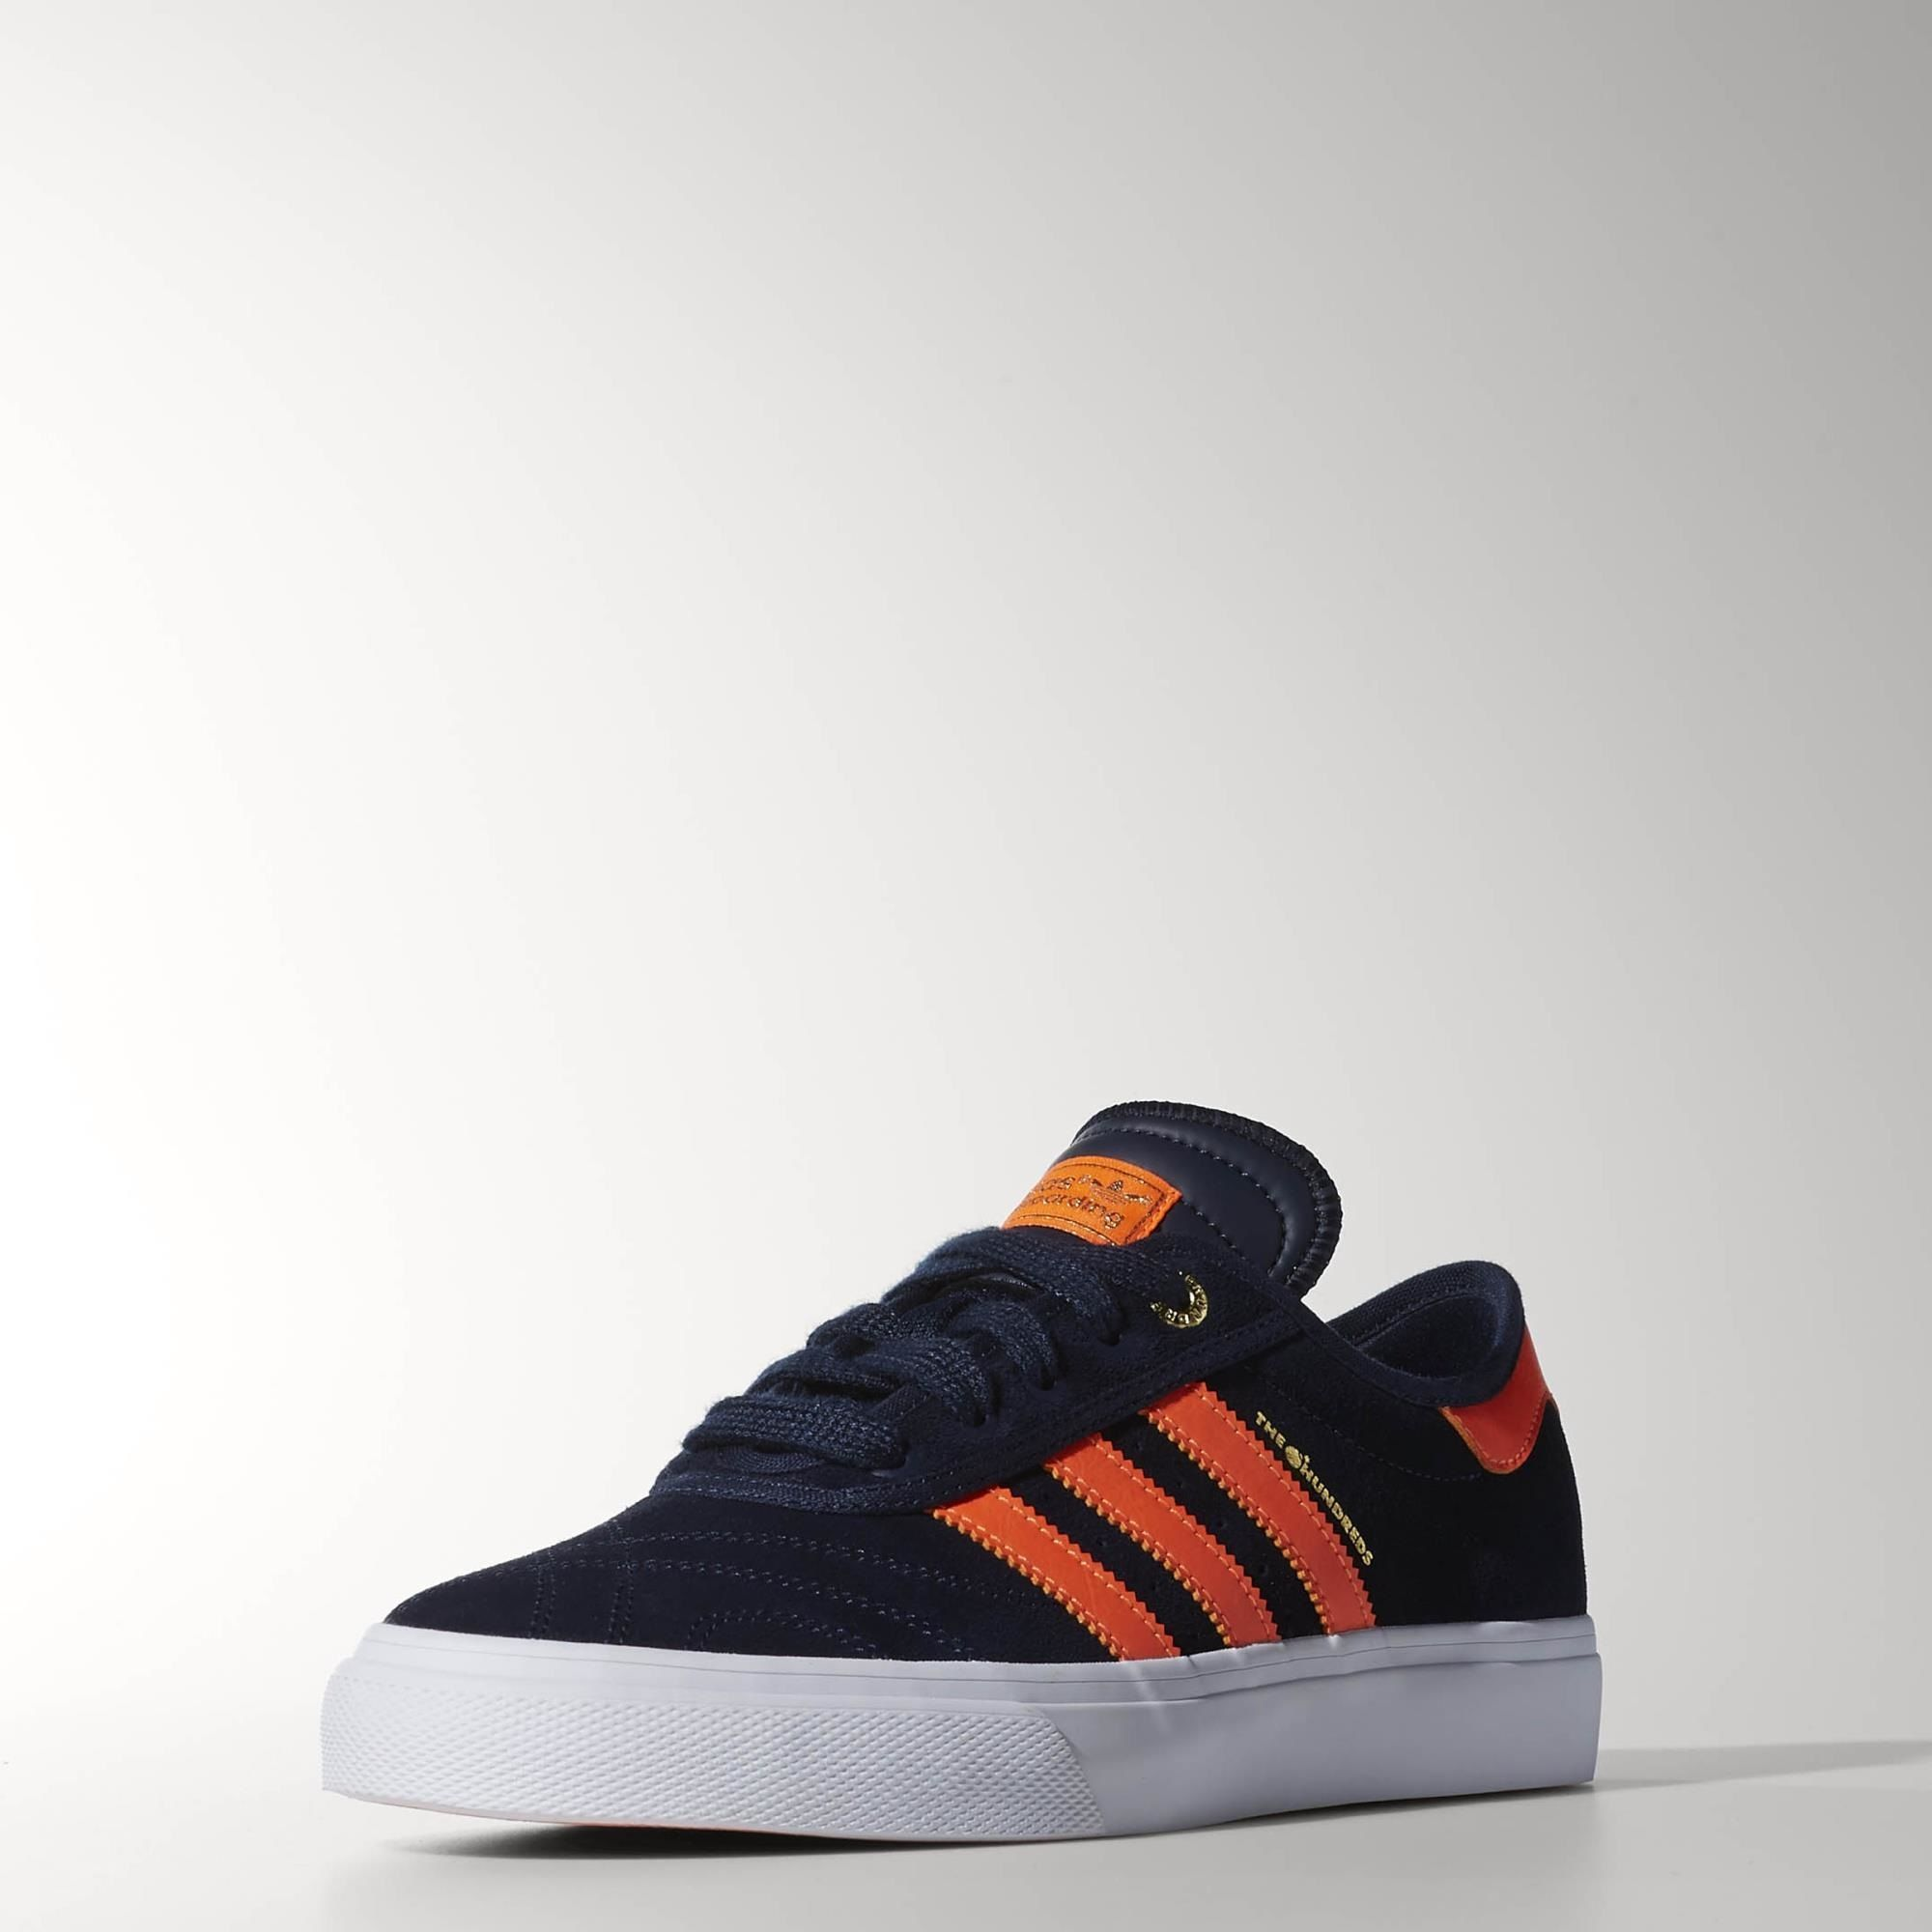 Adidas Adi Ease Hundreds Shoes Adidas Adidas Shoes Blue Adidas